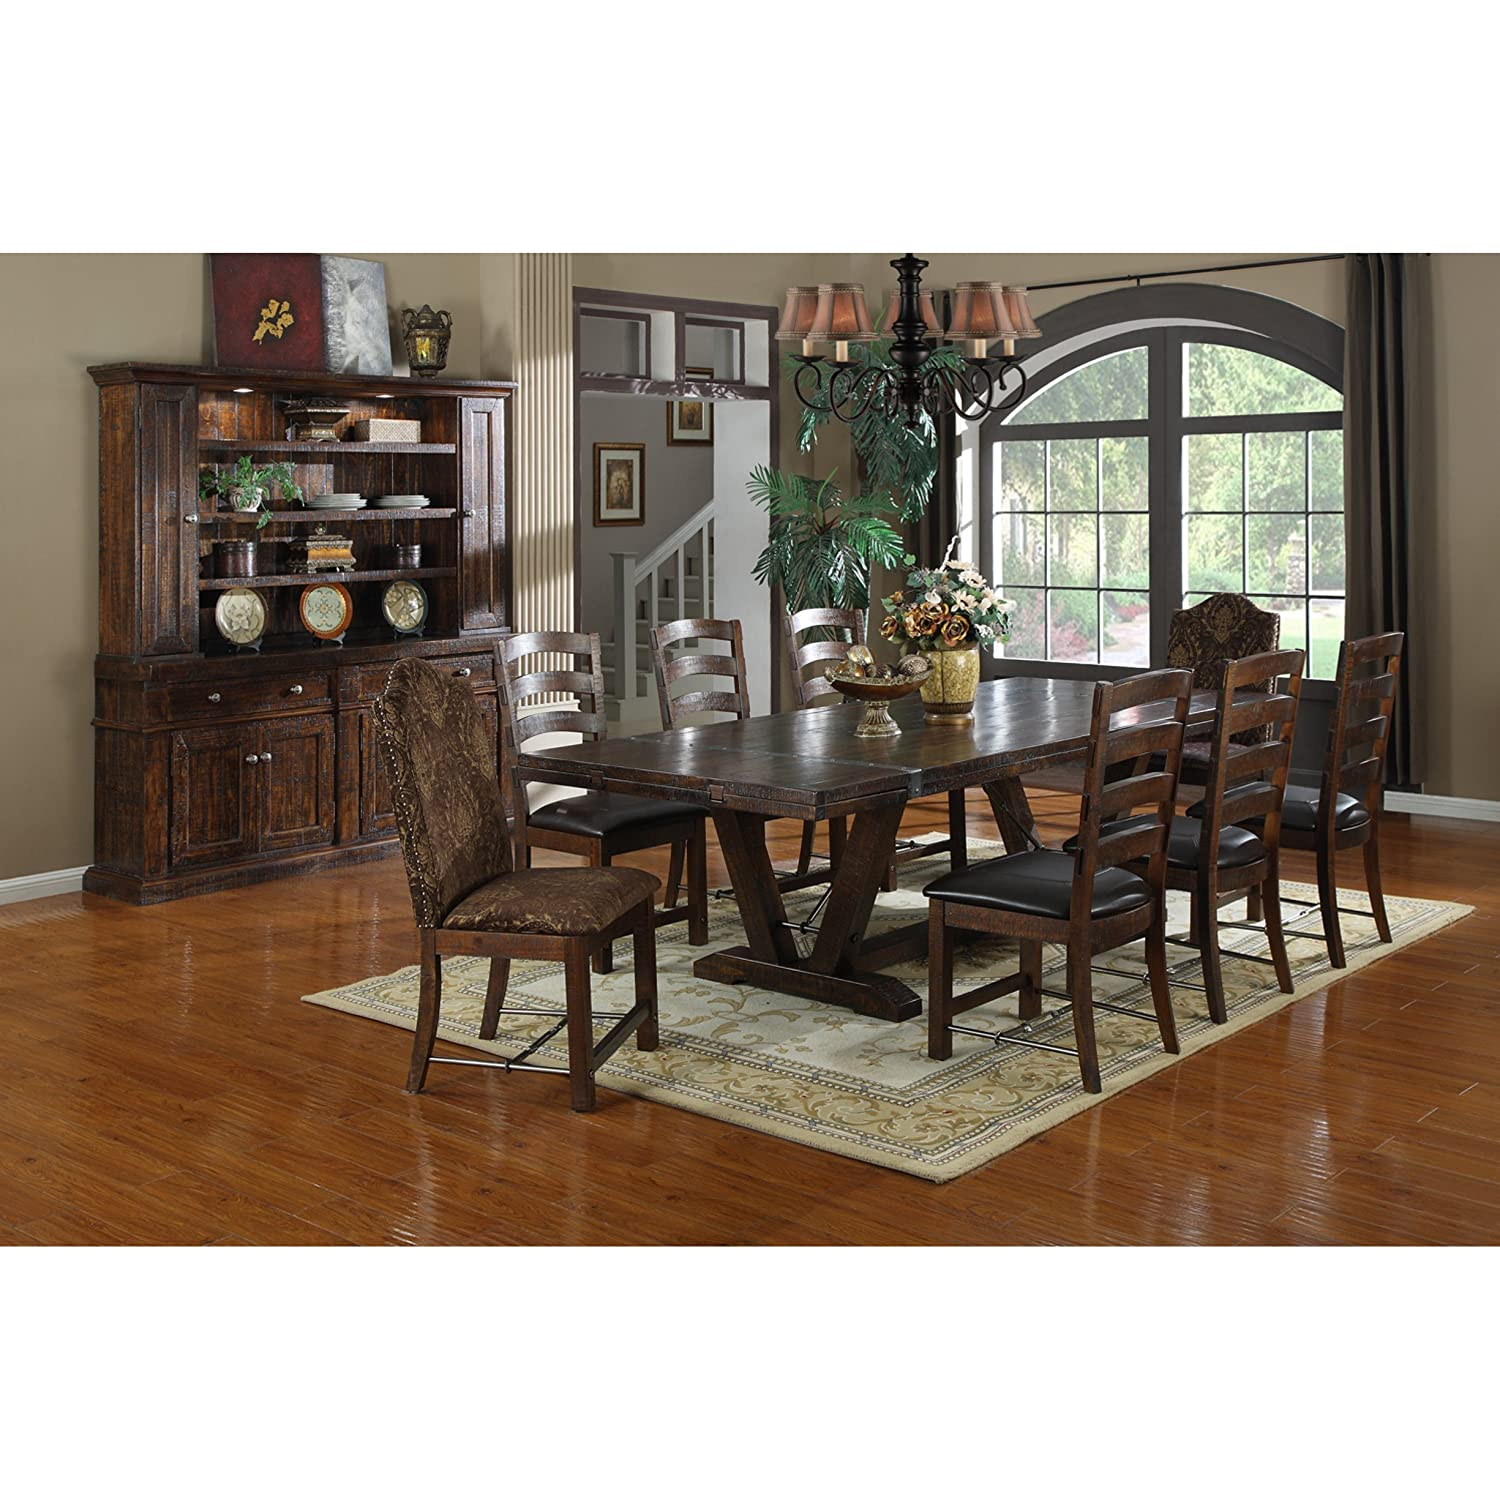 Emerald Home Castlegate Pine Brown Dining Table with Self Storing Extension Leaves, Plank Style Top, And Turnbuckle Bracing